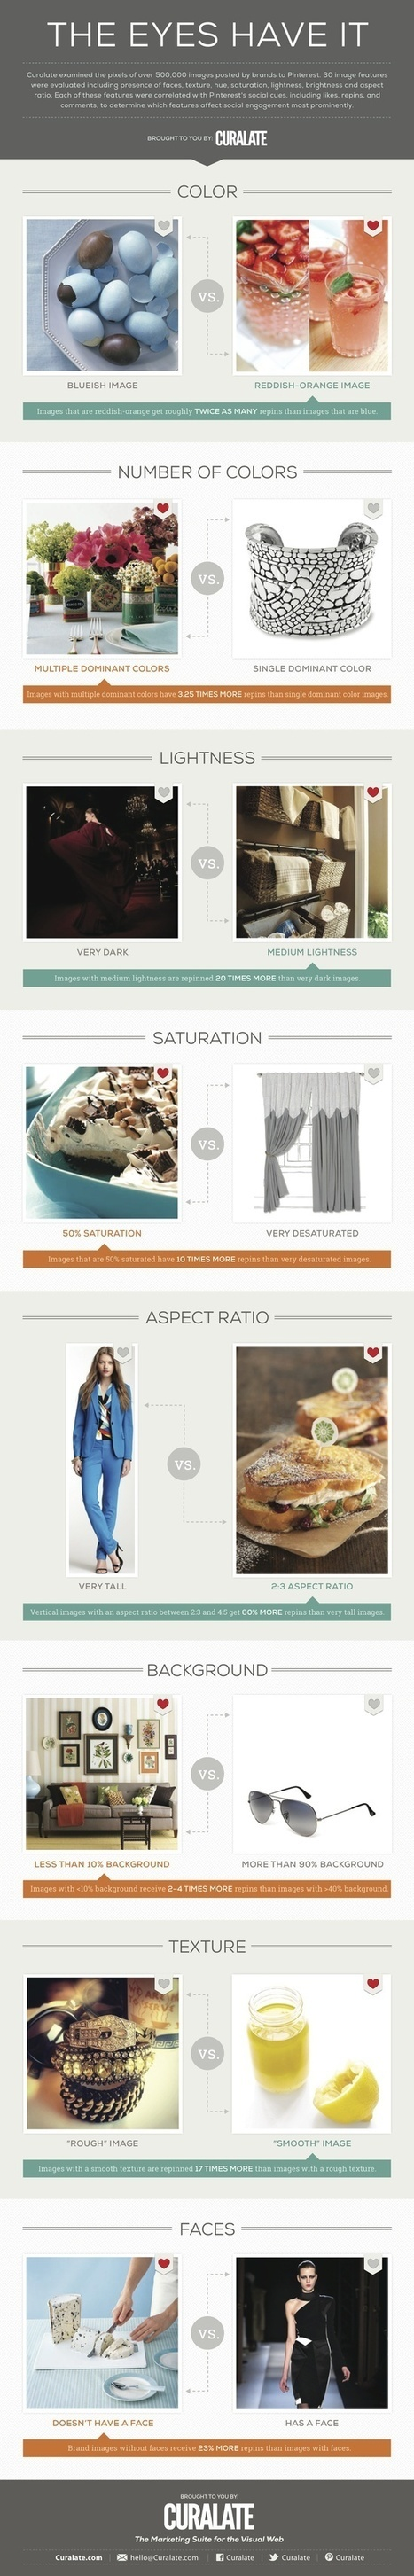 All About Pinterest | Picture marketing | Scoop.it